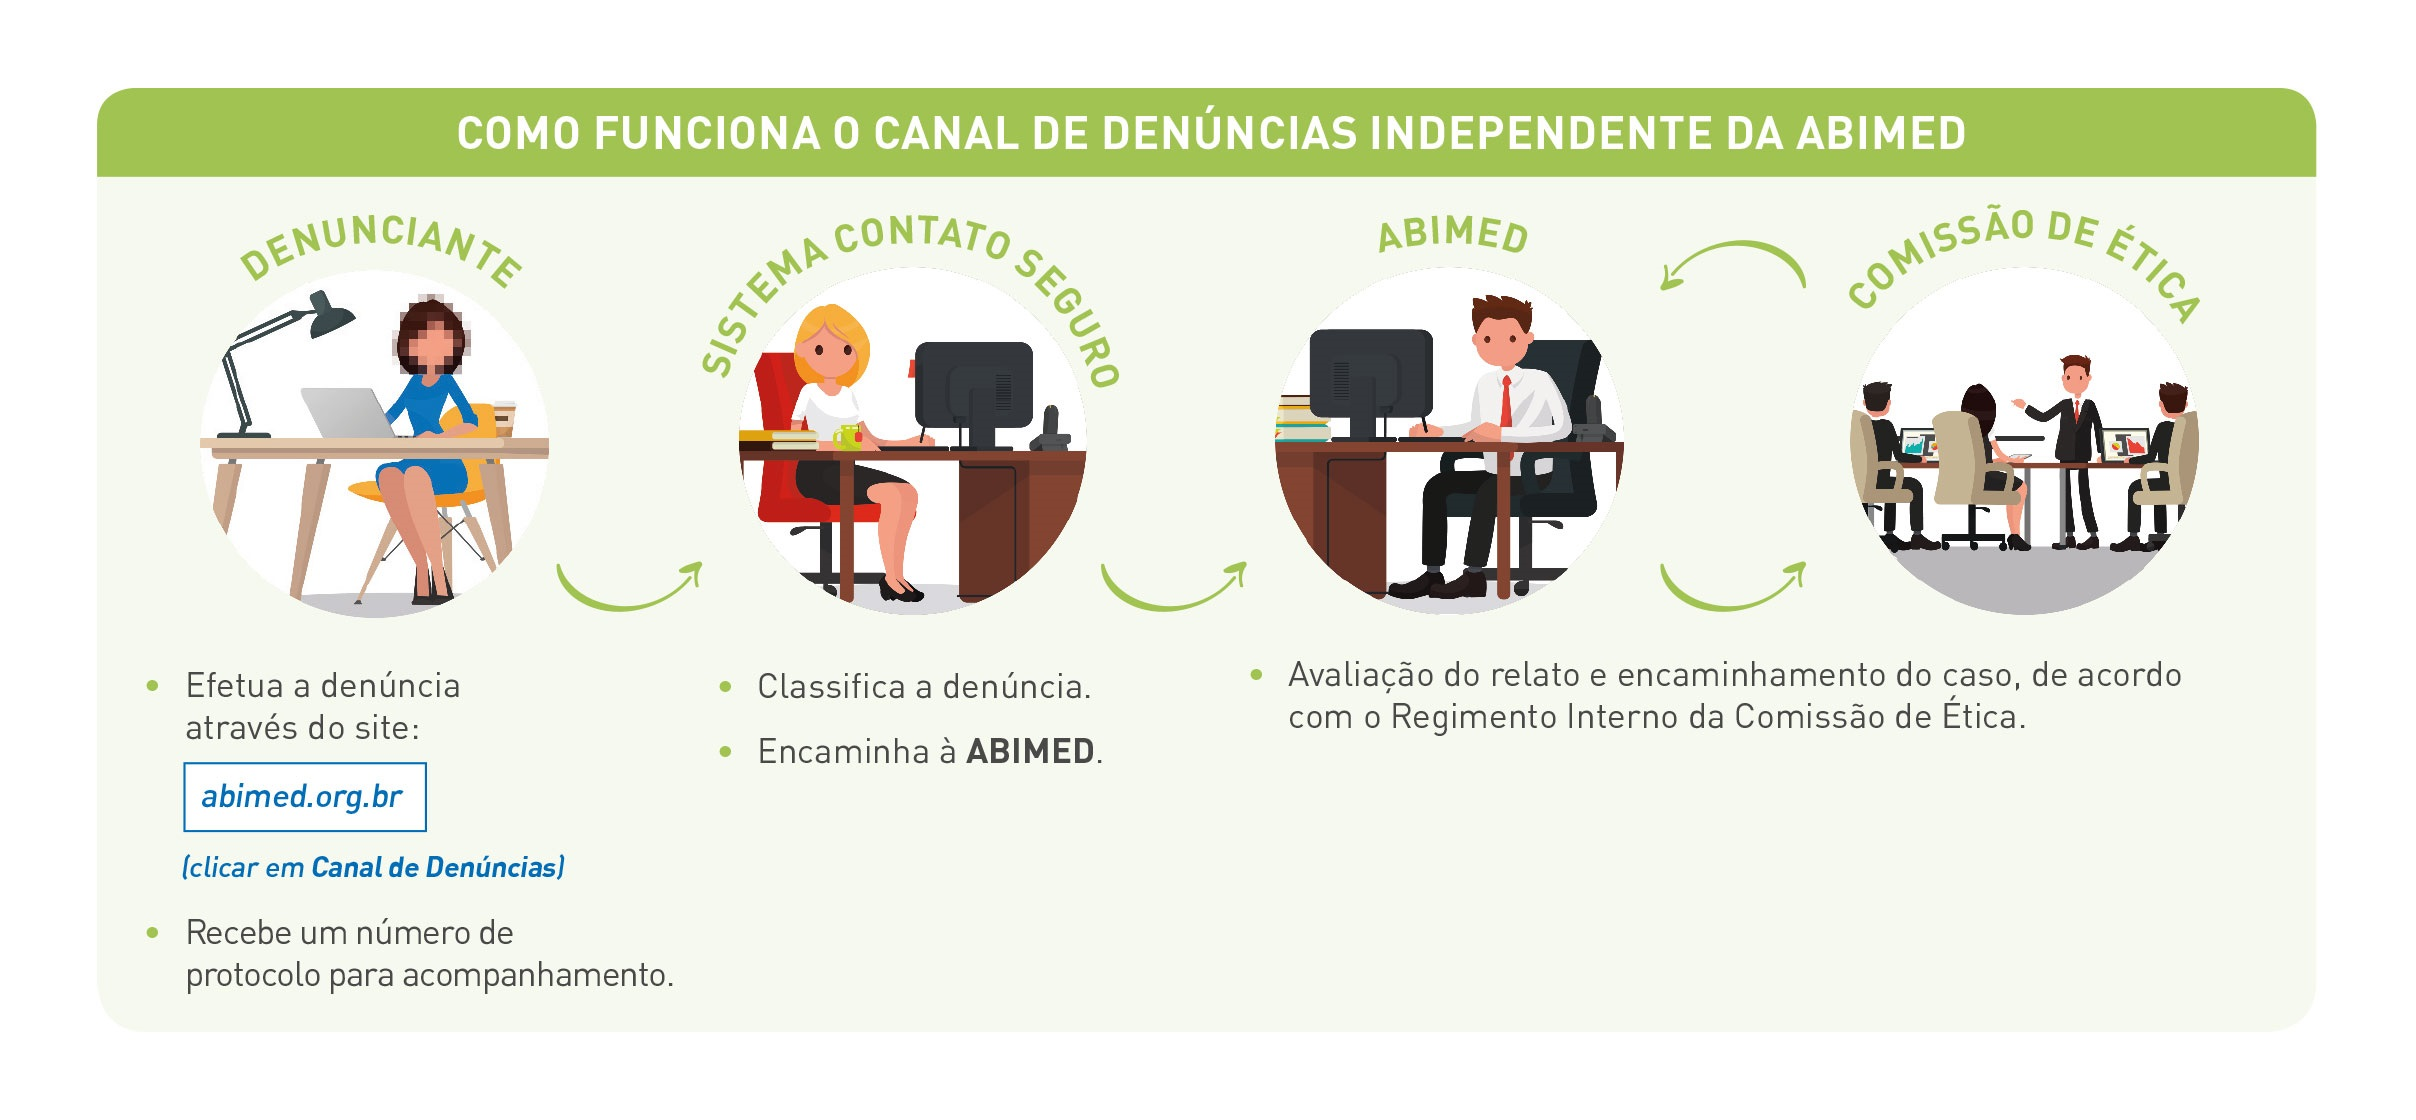 ABIMED lança canal de denúncias independente ABIMED